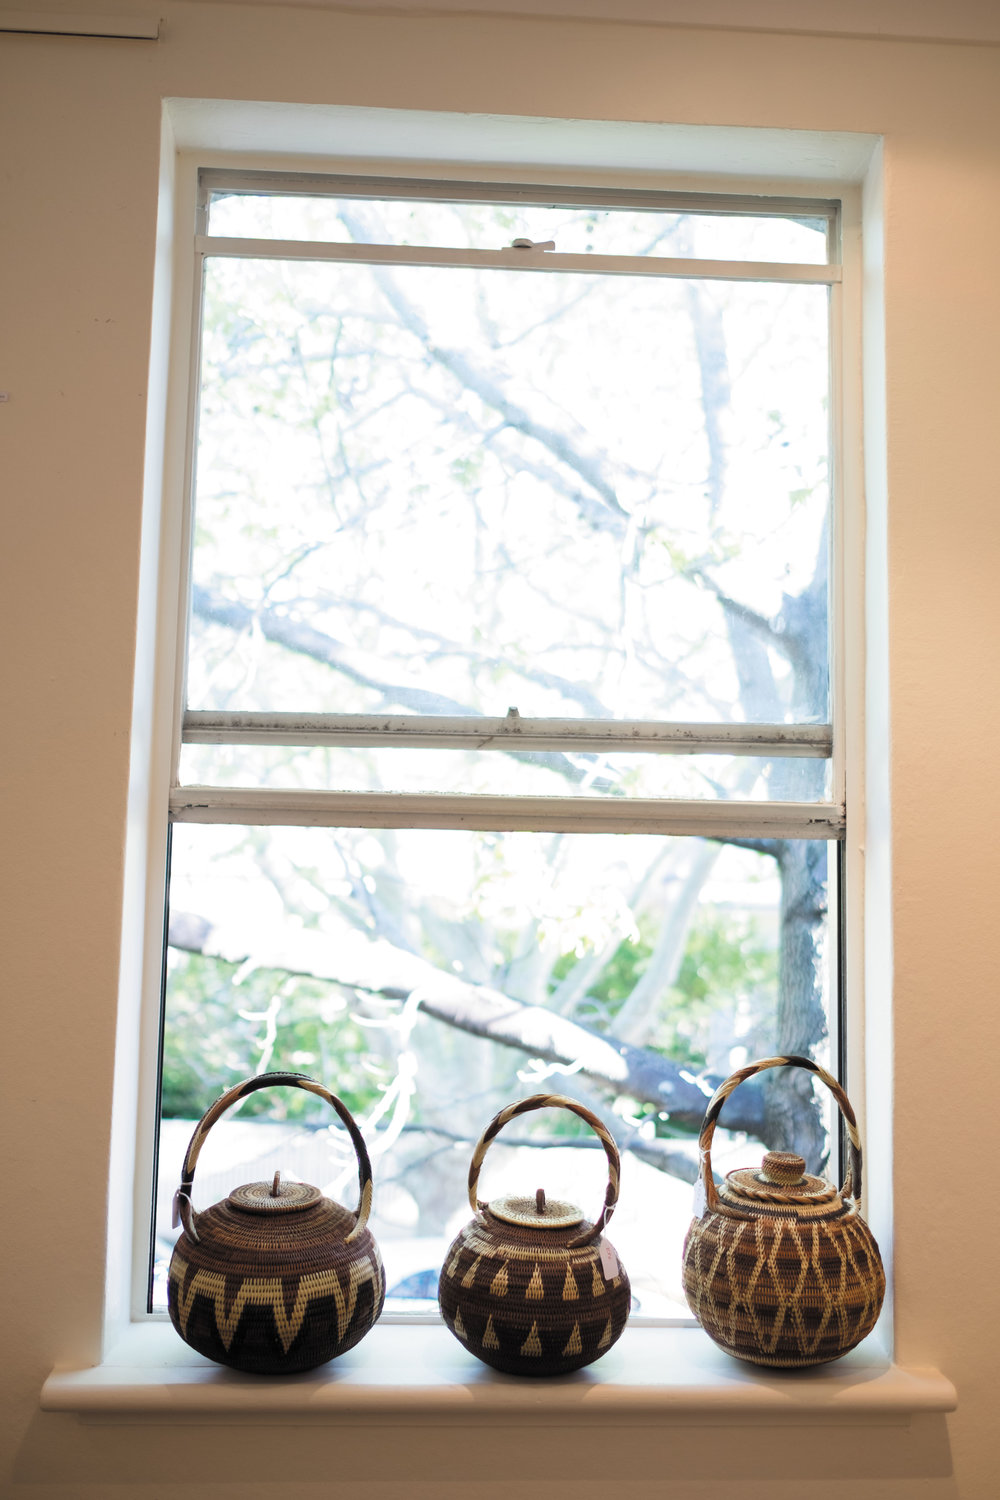 baskets window daytime higher.jpg